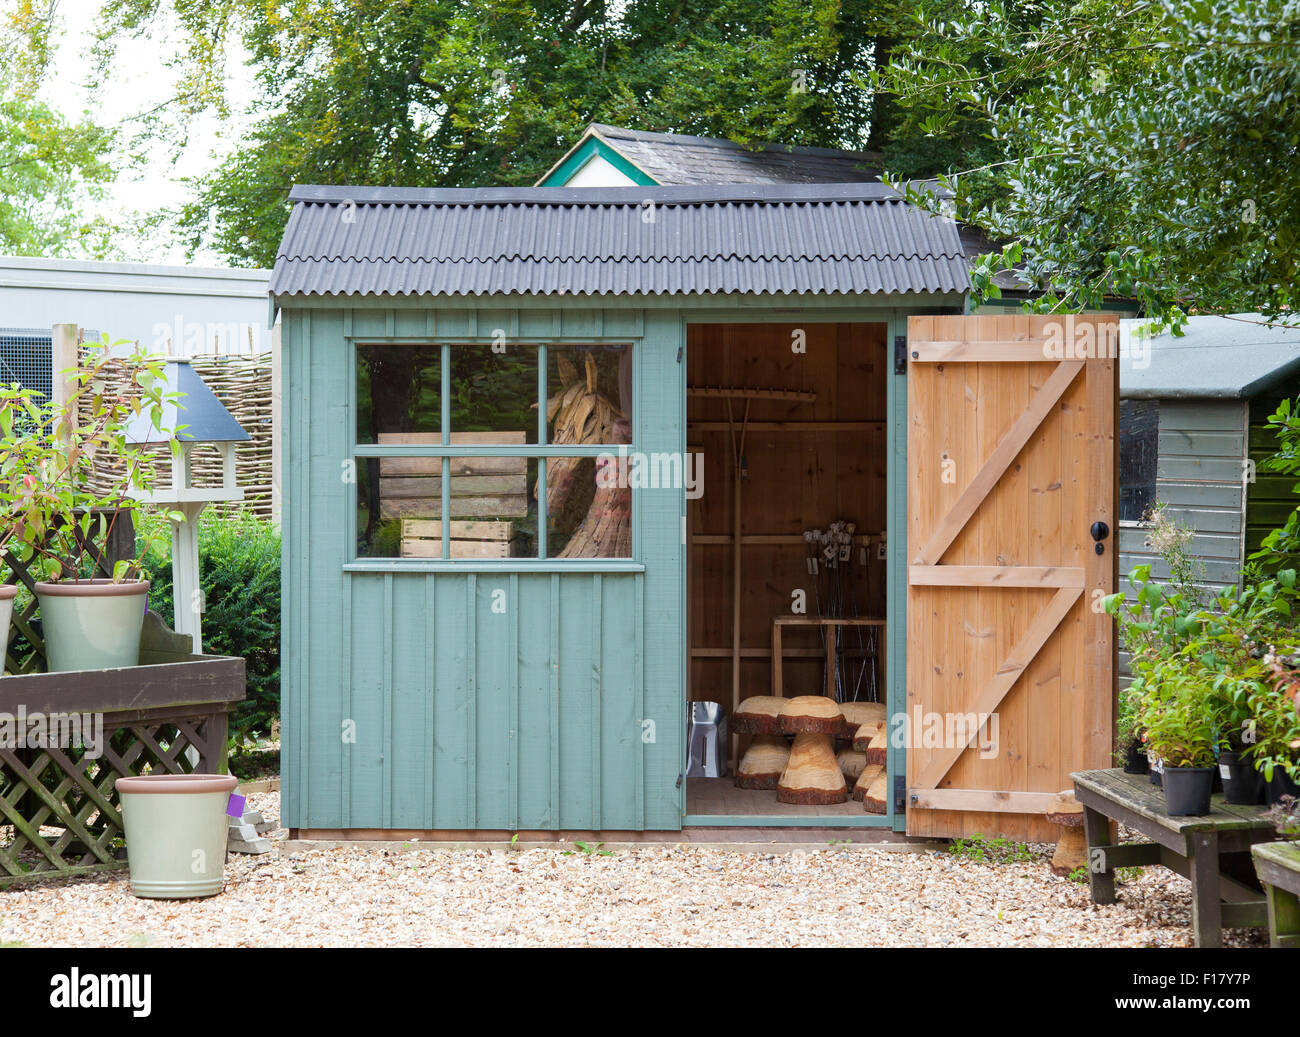 A Beautiful Garden Shed Surrounded By Pots And Plants   Stock Image